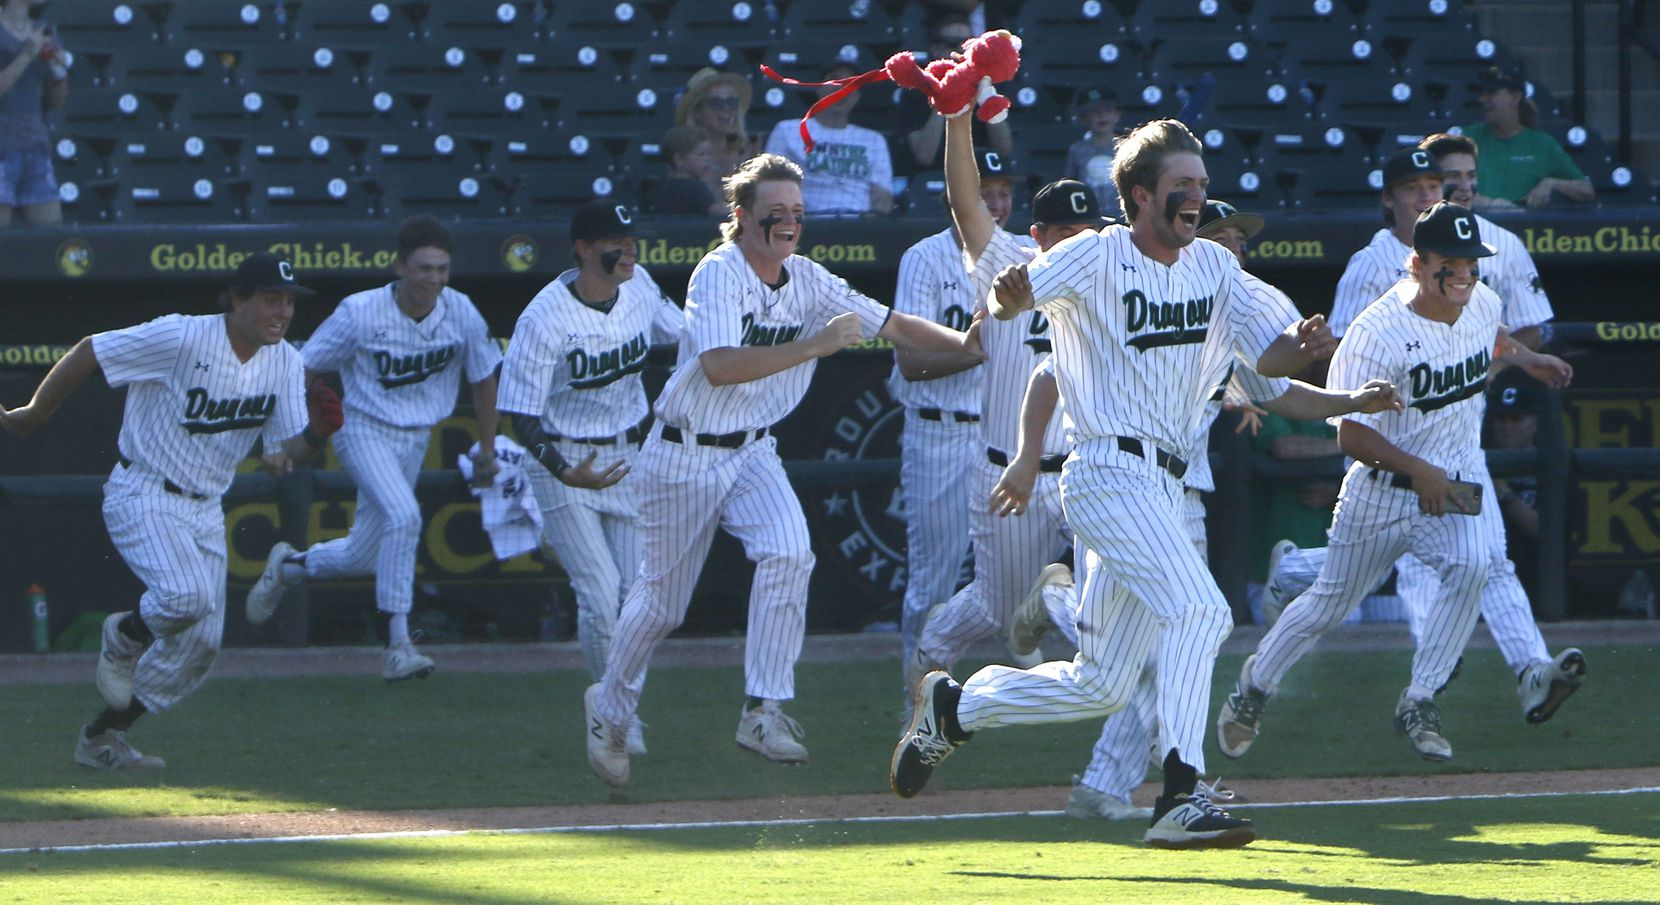 Members of the Southlake Carroll Dragons bolt onto the field following the final out in their 17-0 victory over Fort Bend Ridge Point to claim their 2nd consecutive state championship. The two teams played in the Class 6A state championship baseball game at Dell Diamond in Round Rock on June 8, 2019.